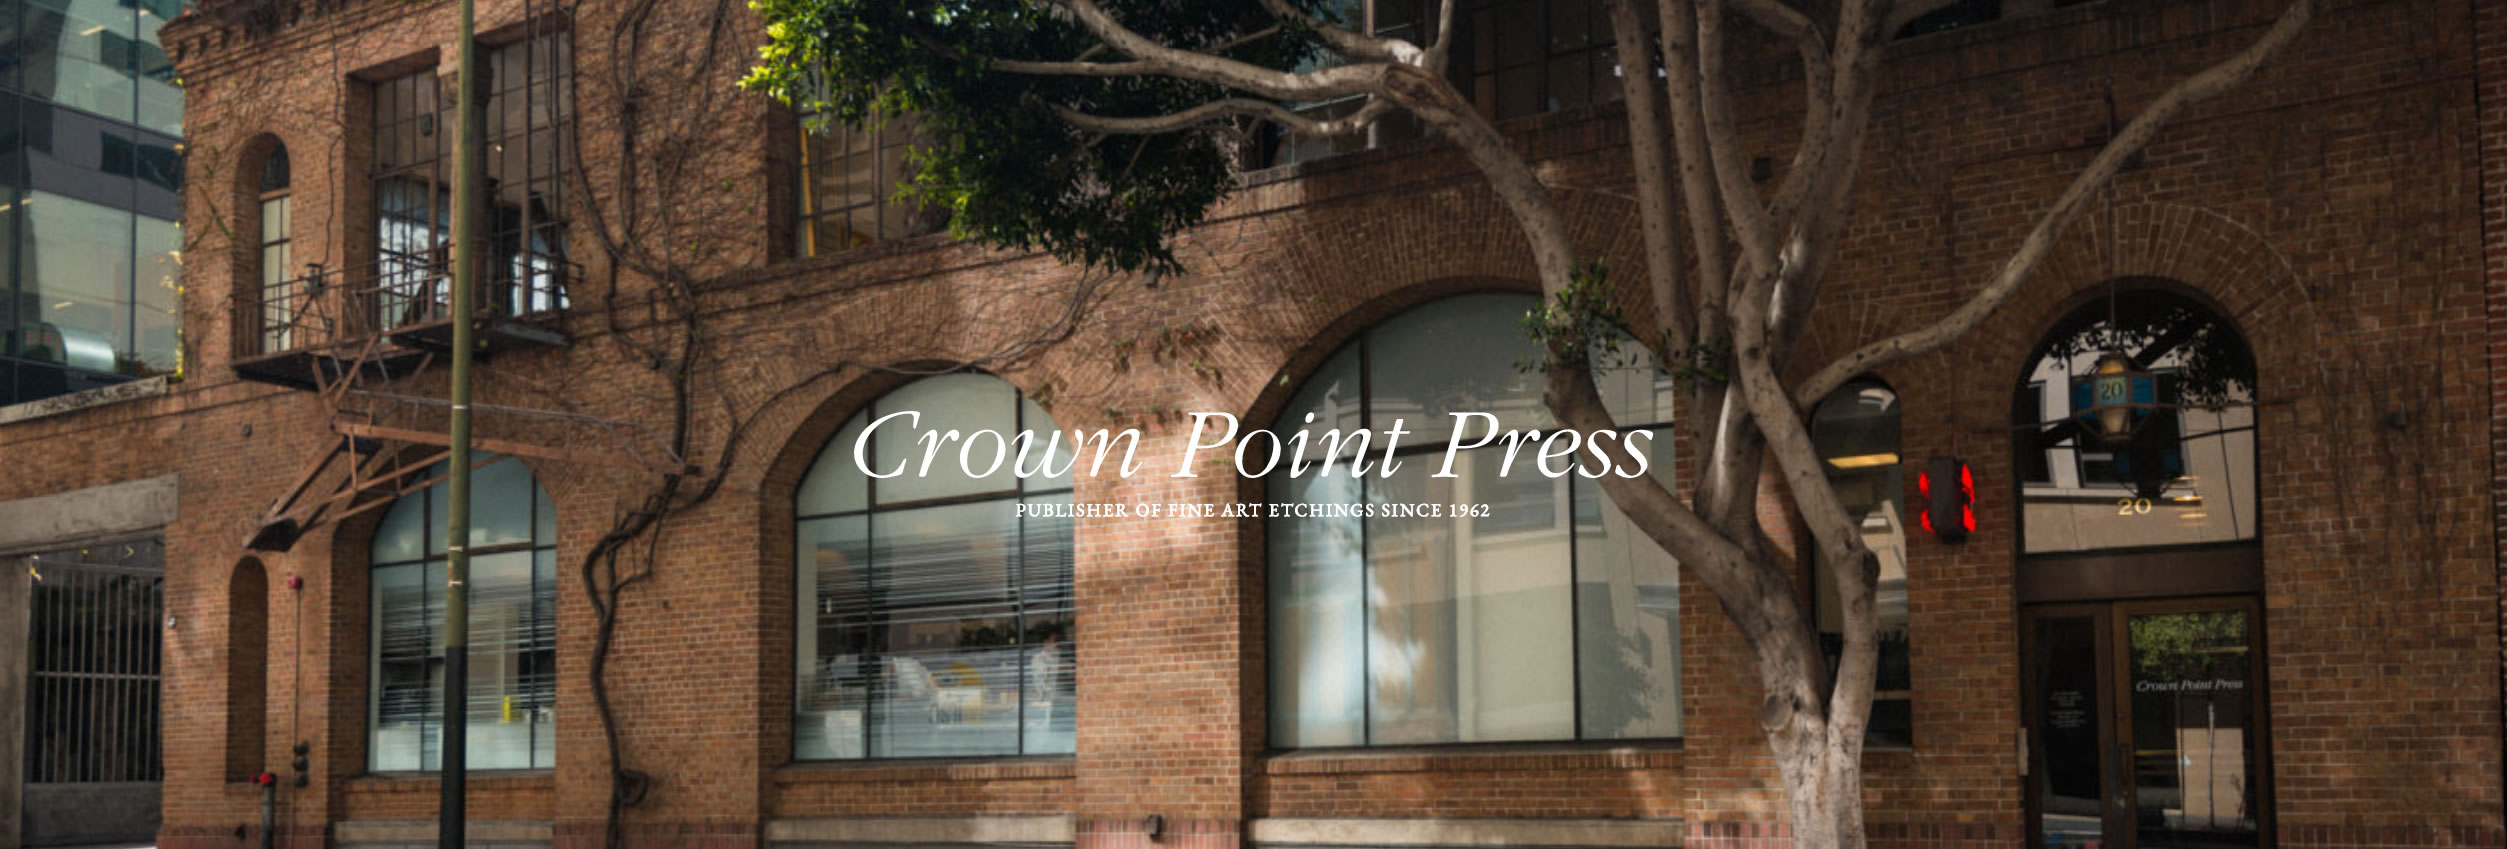 crown_point_press_galeria_de_gravura